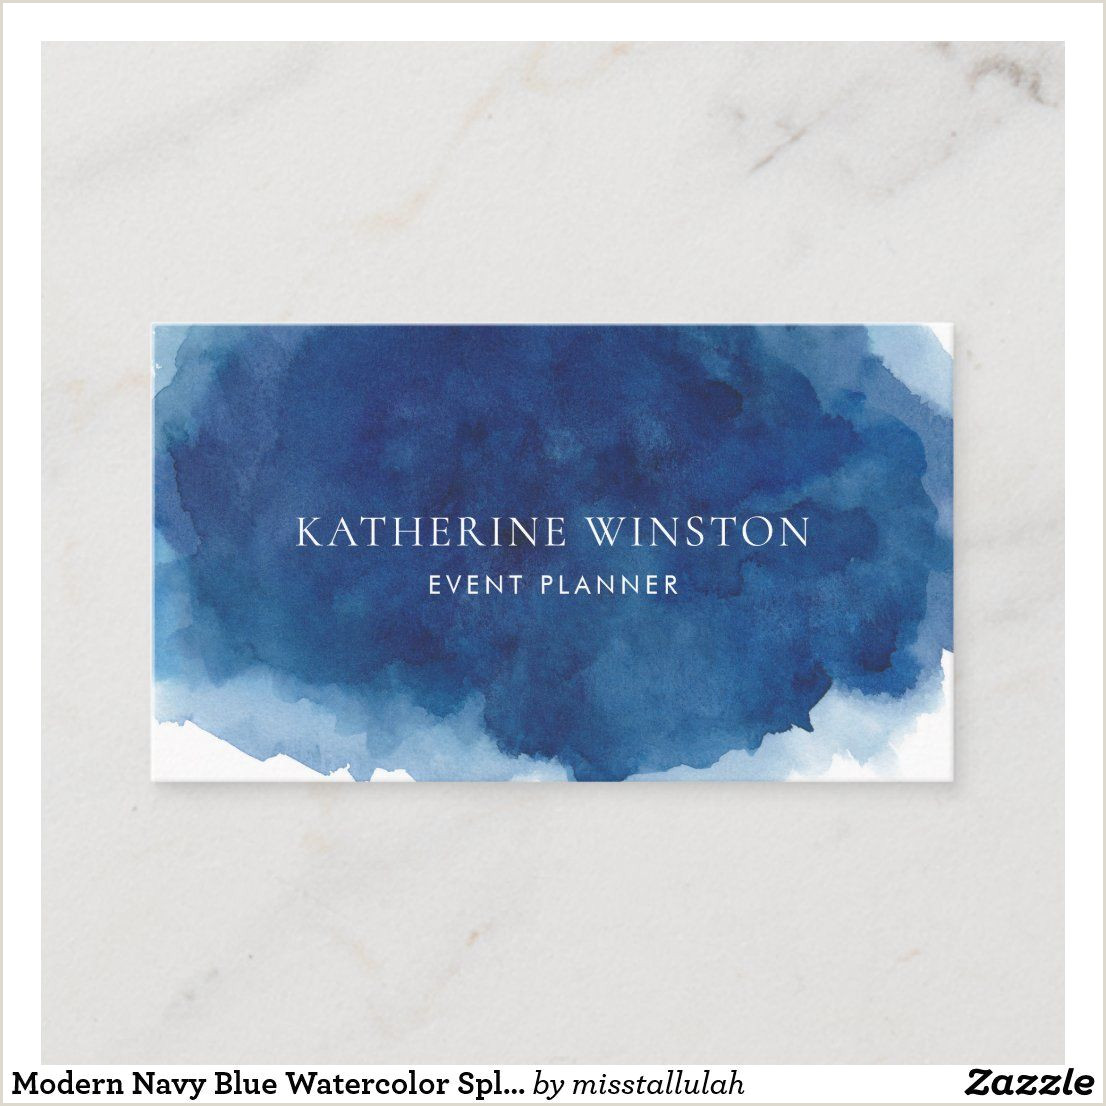 Best Business Cards For Watercolor Artists Modern Navy Blue Watercolor Splash Background Business Card